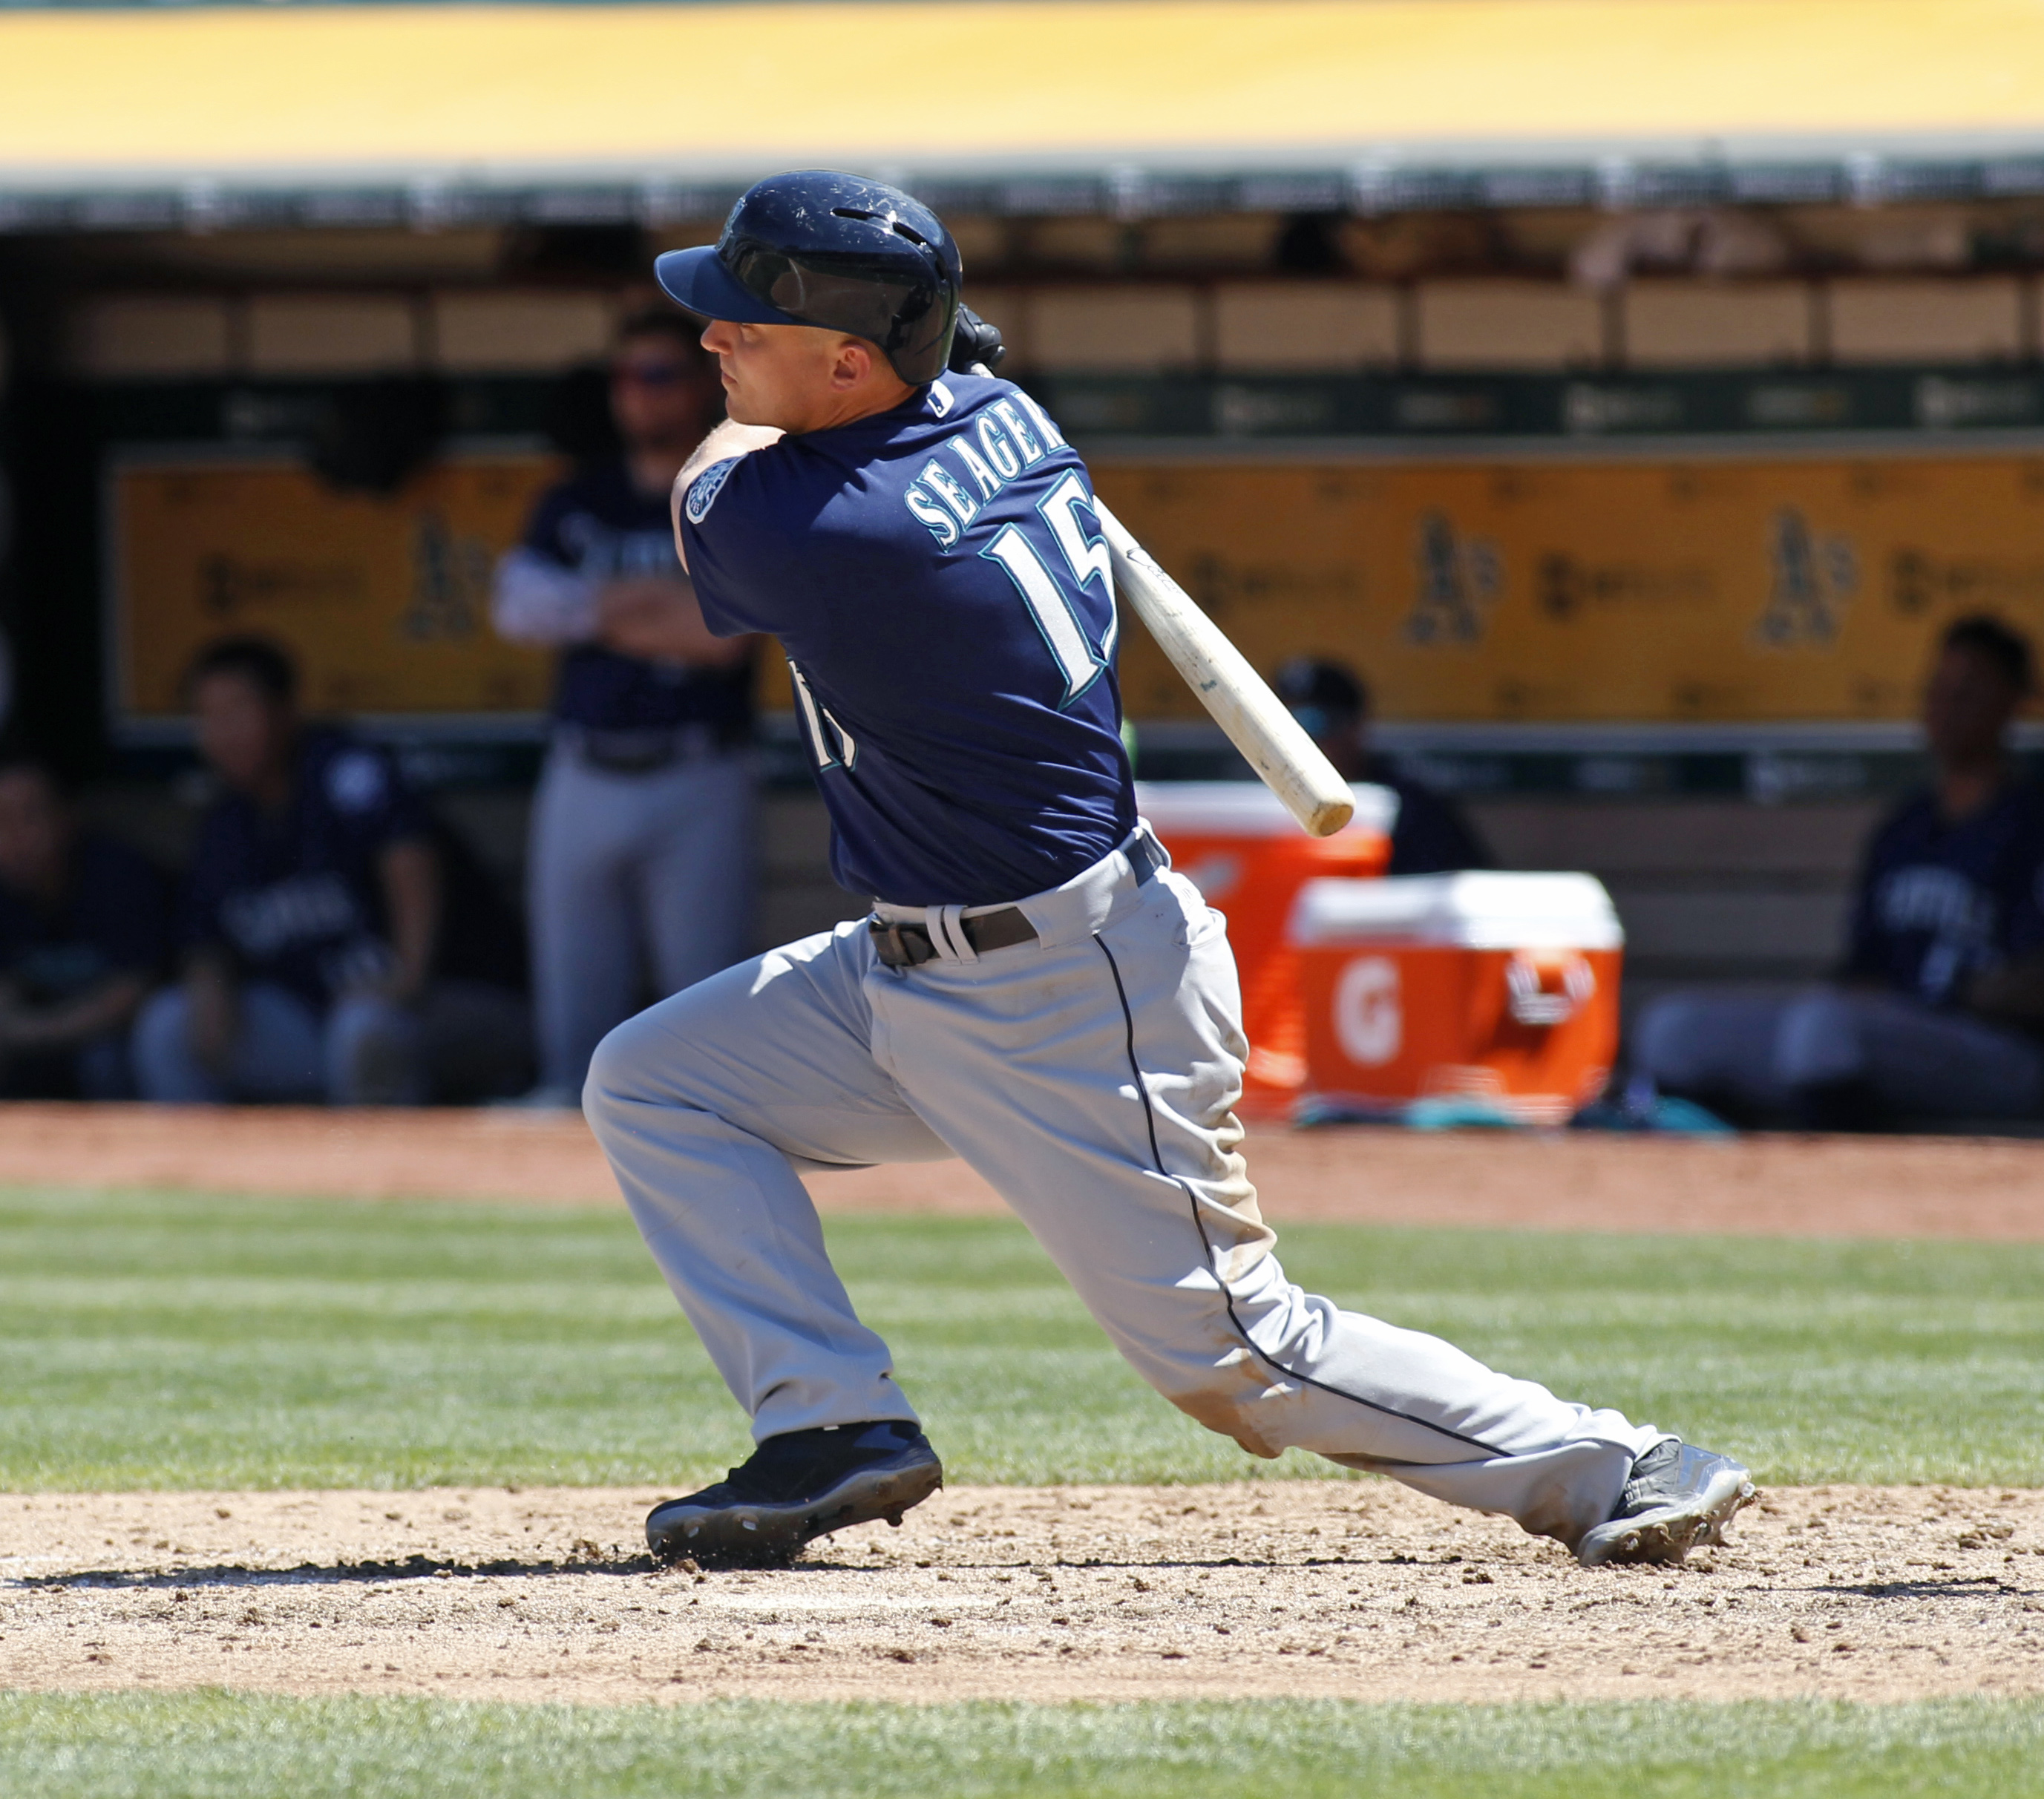 Seattle Mariners' Kyle Seager hits a three RBI-double against the Oakland Athletics during the sixth inning of a baseball game, Sunday, Aug. 14, 2016, in Oakland, Calif. (AP Photo/George Nikitin)